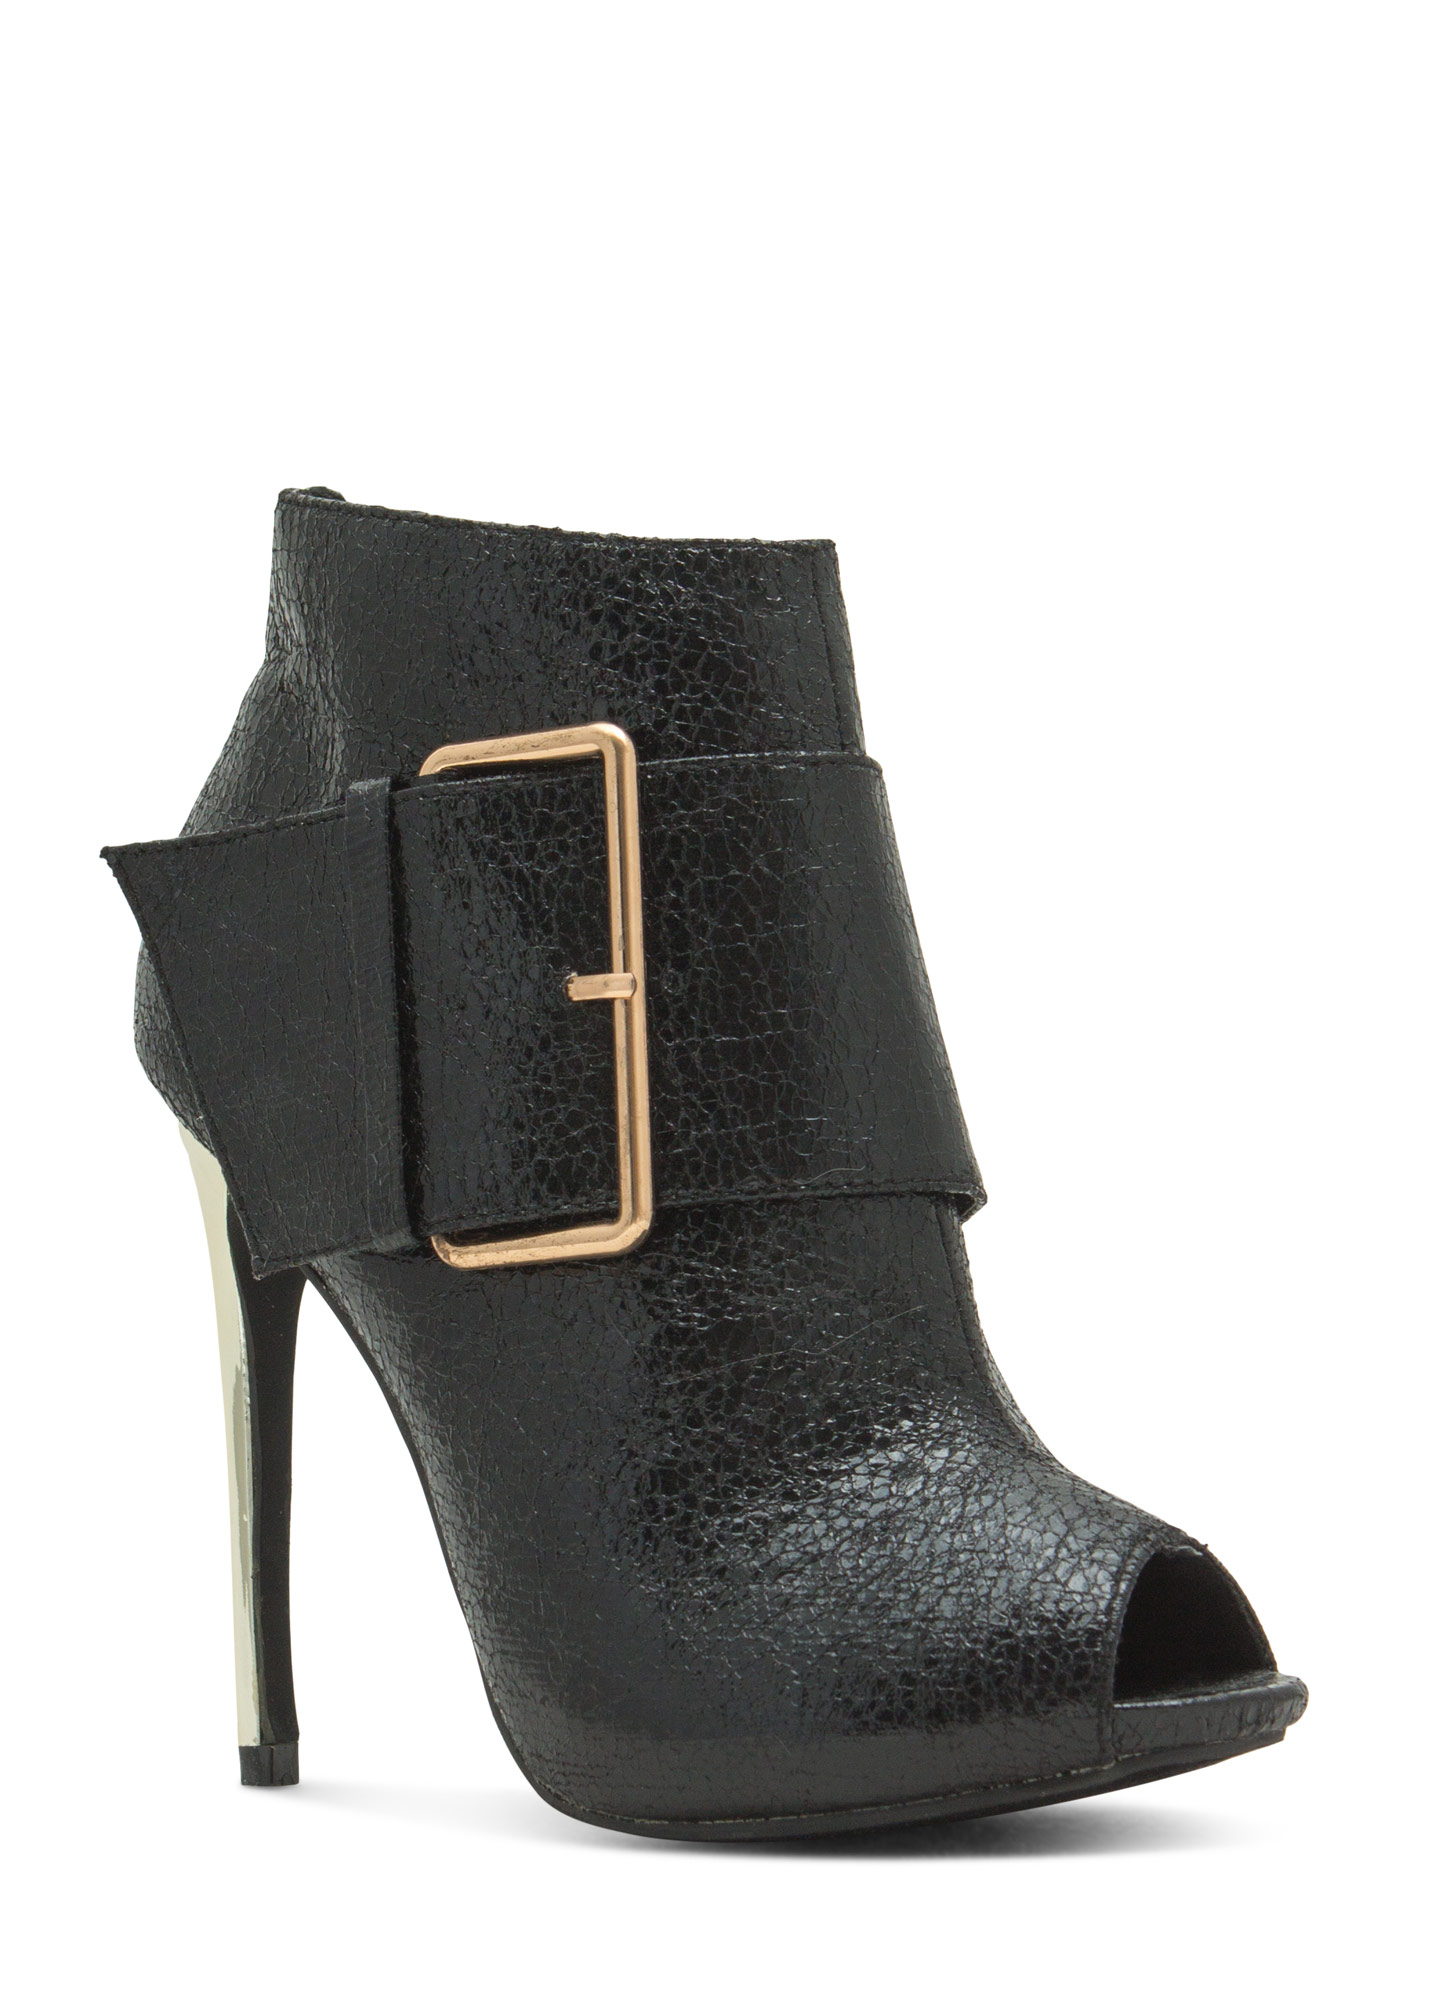 Oversized Buckle Peep-Toe Booties BLACK